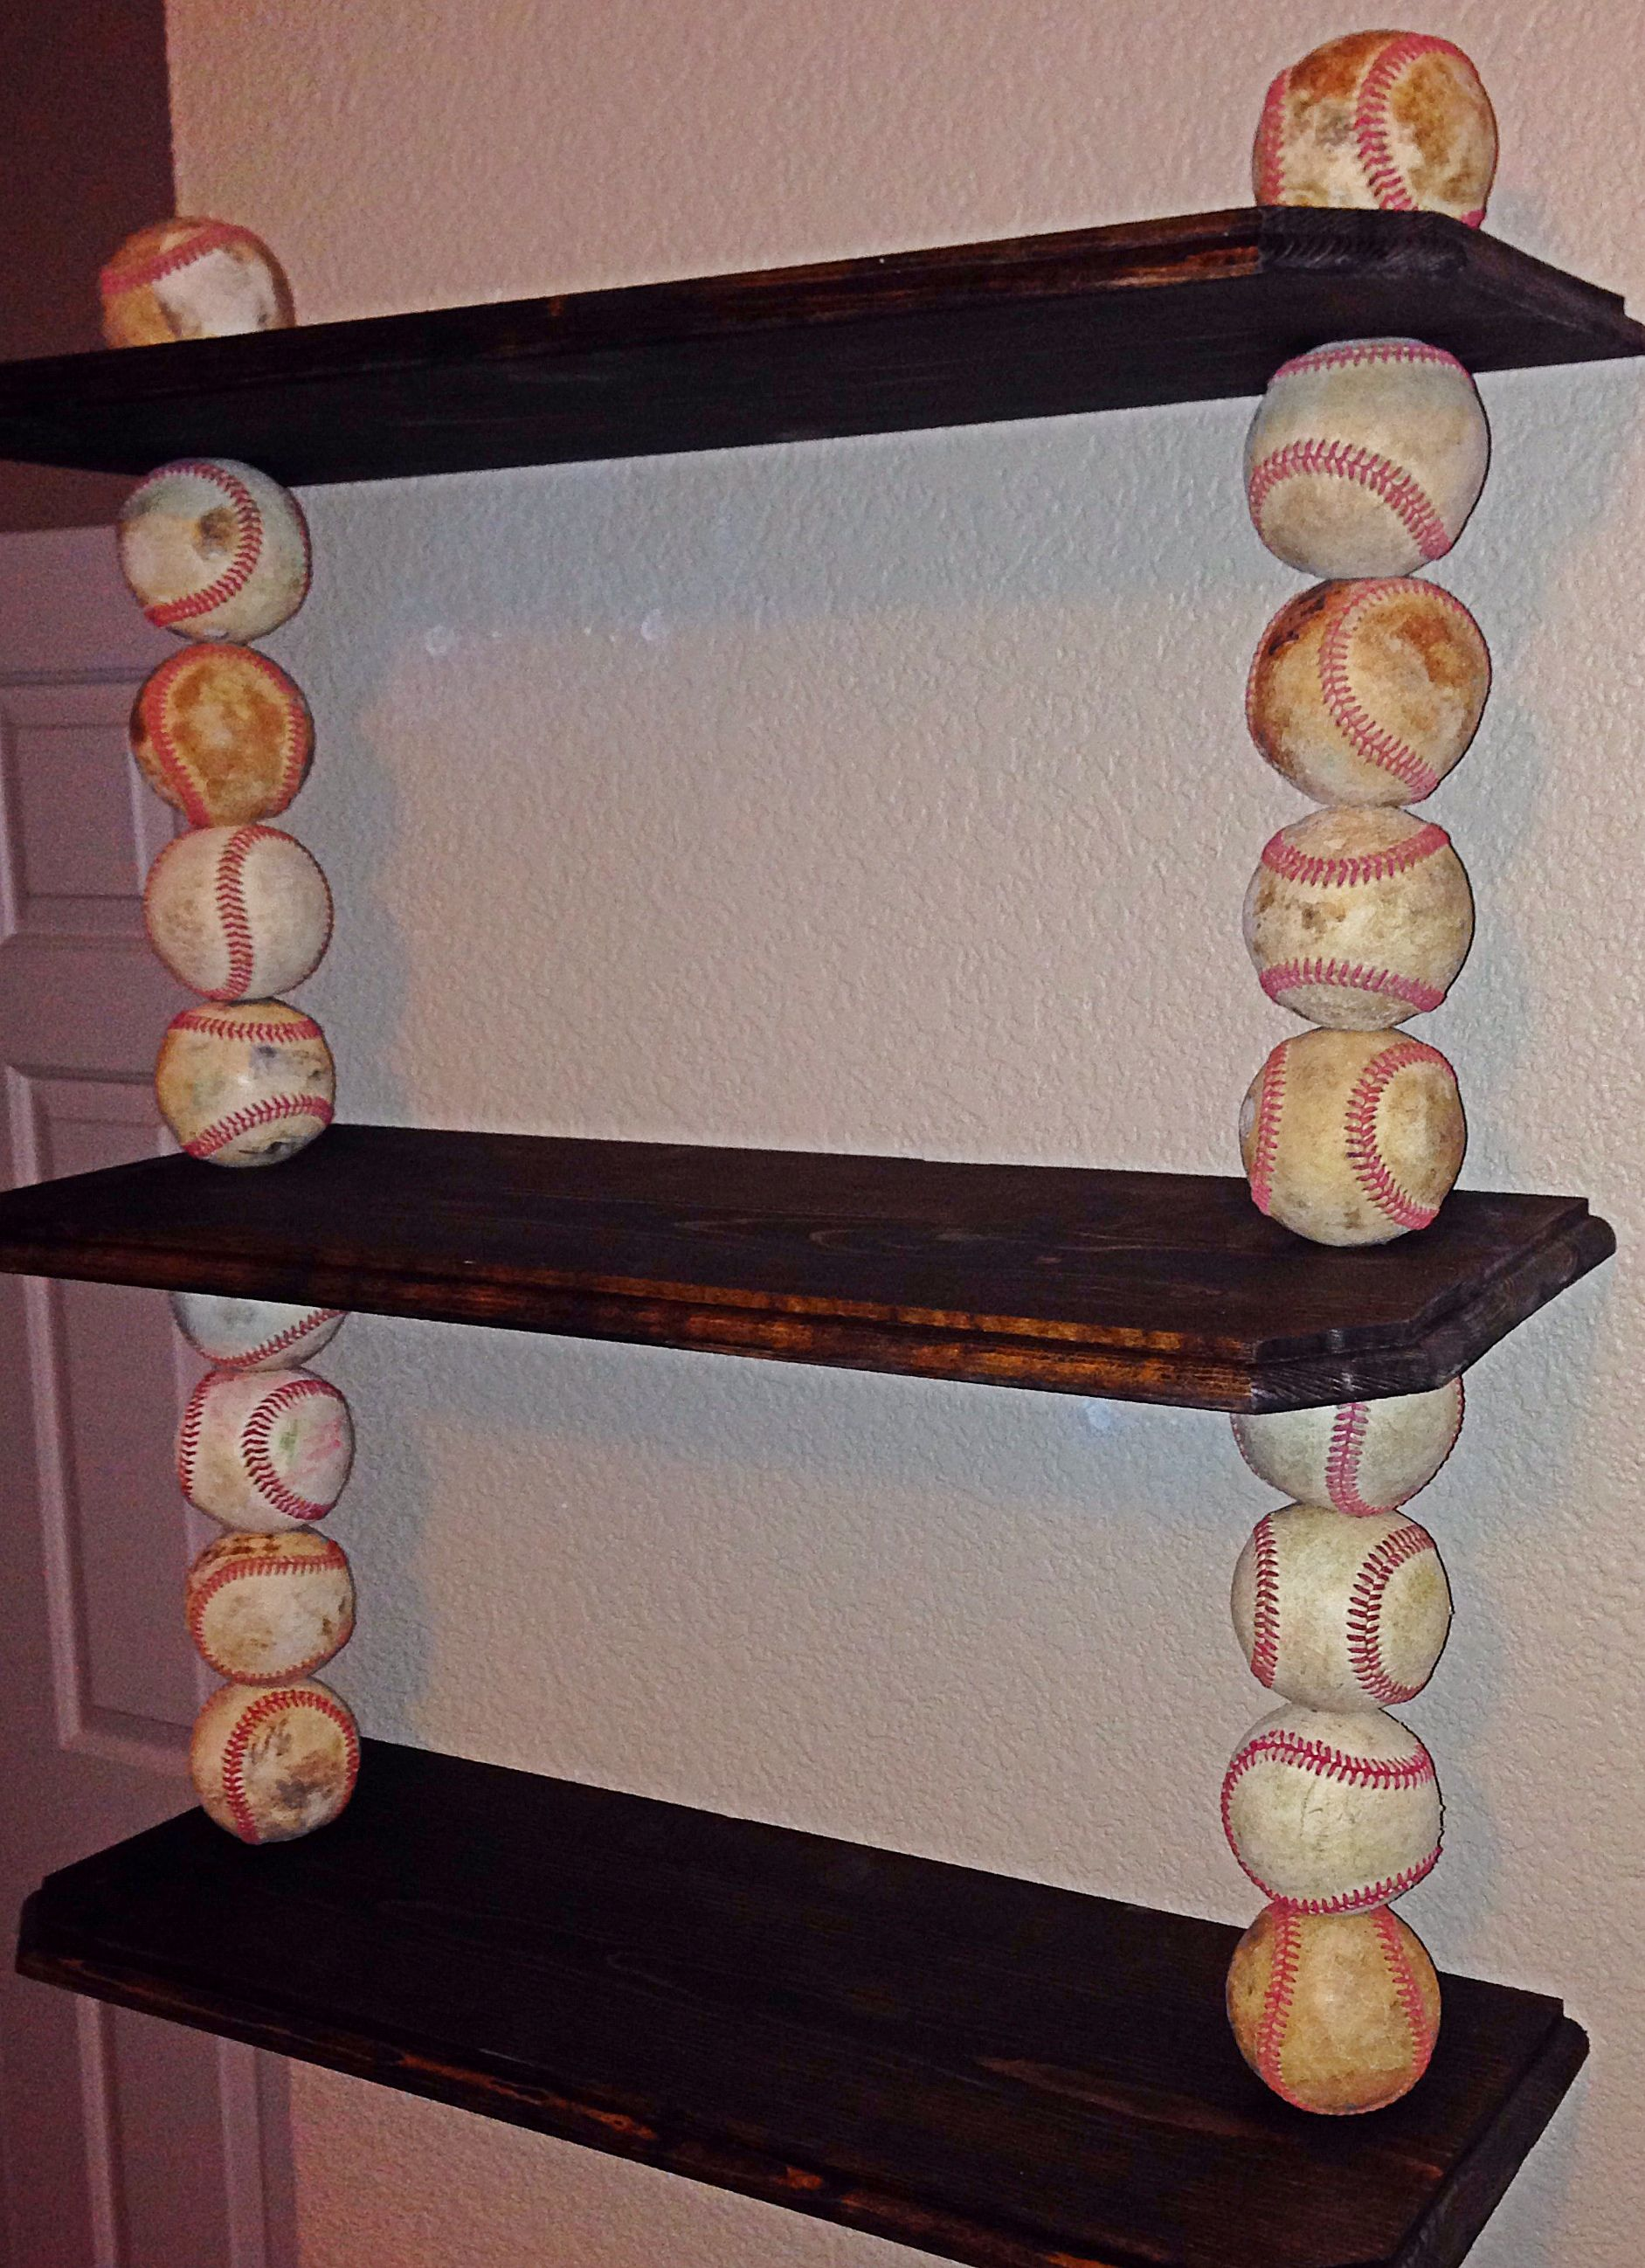 Custom made to order baseball shelves All shelves are made from